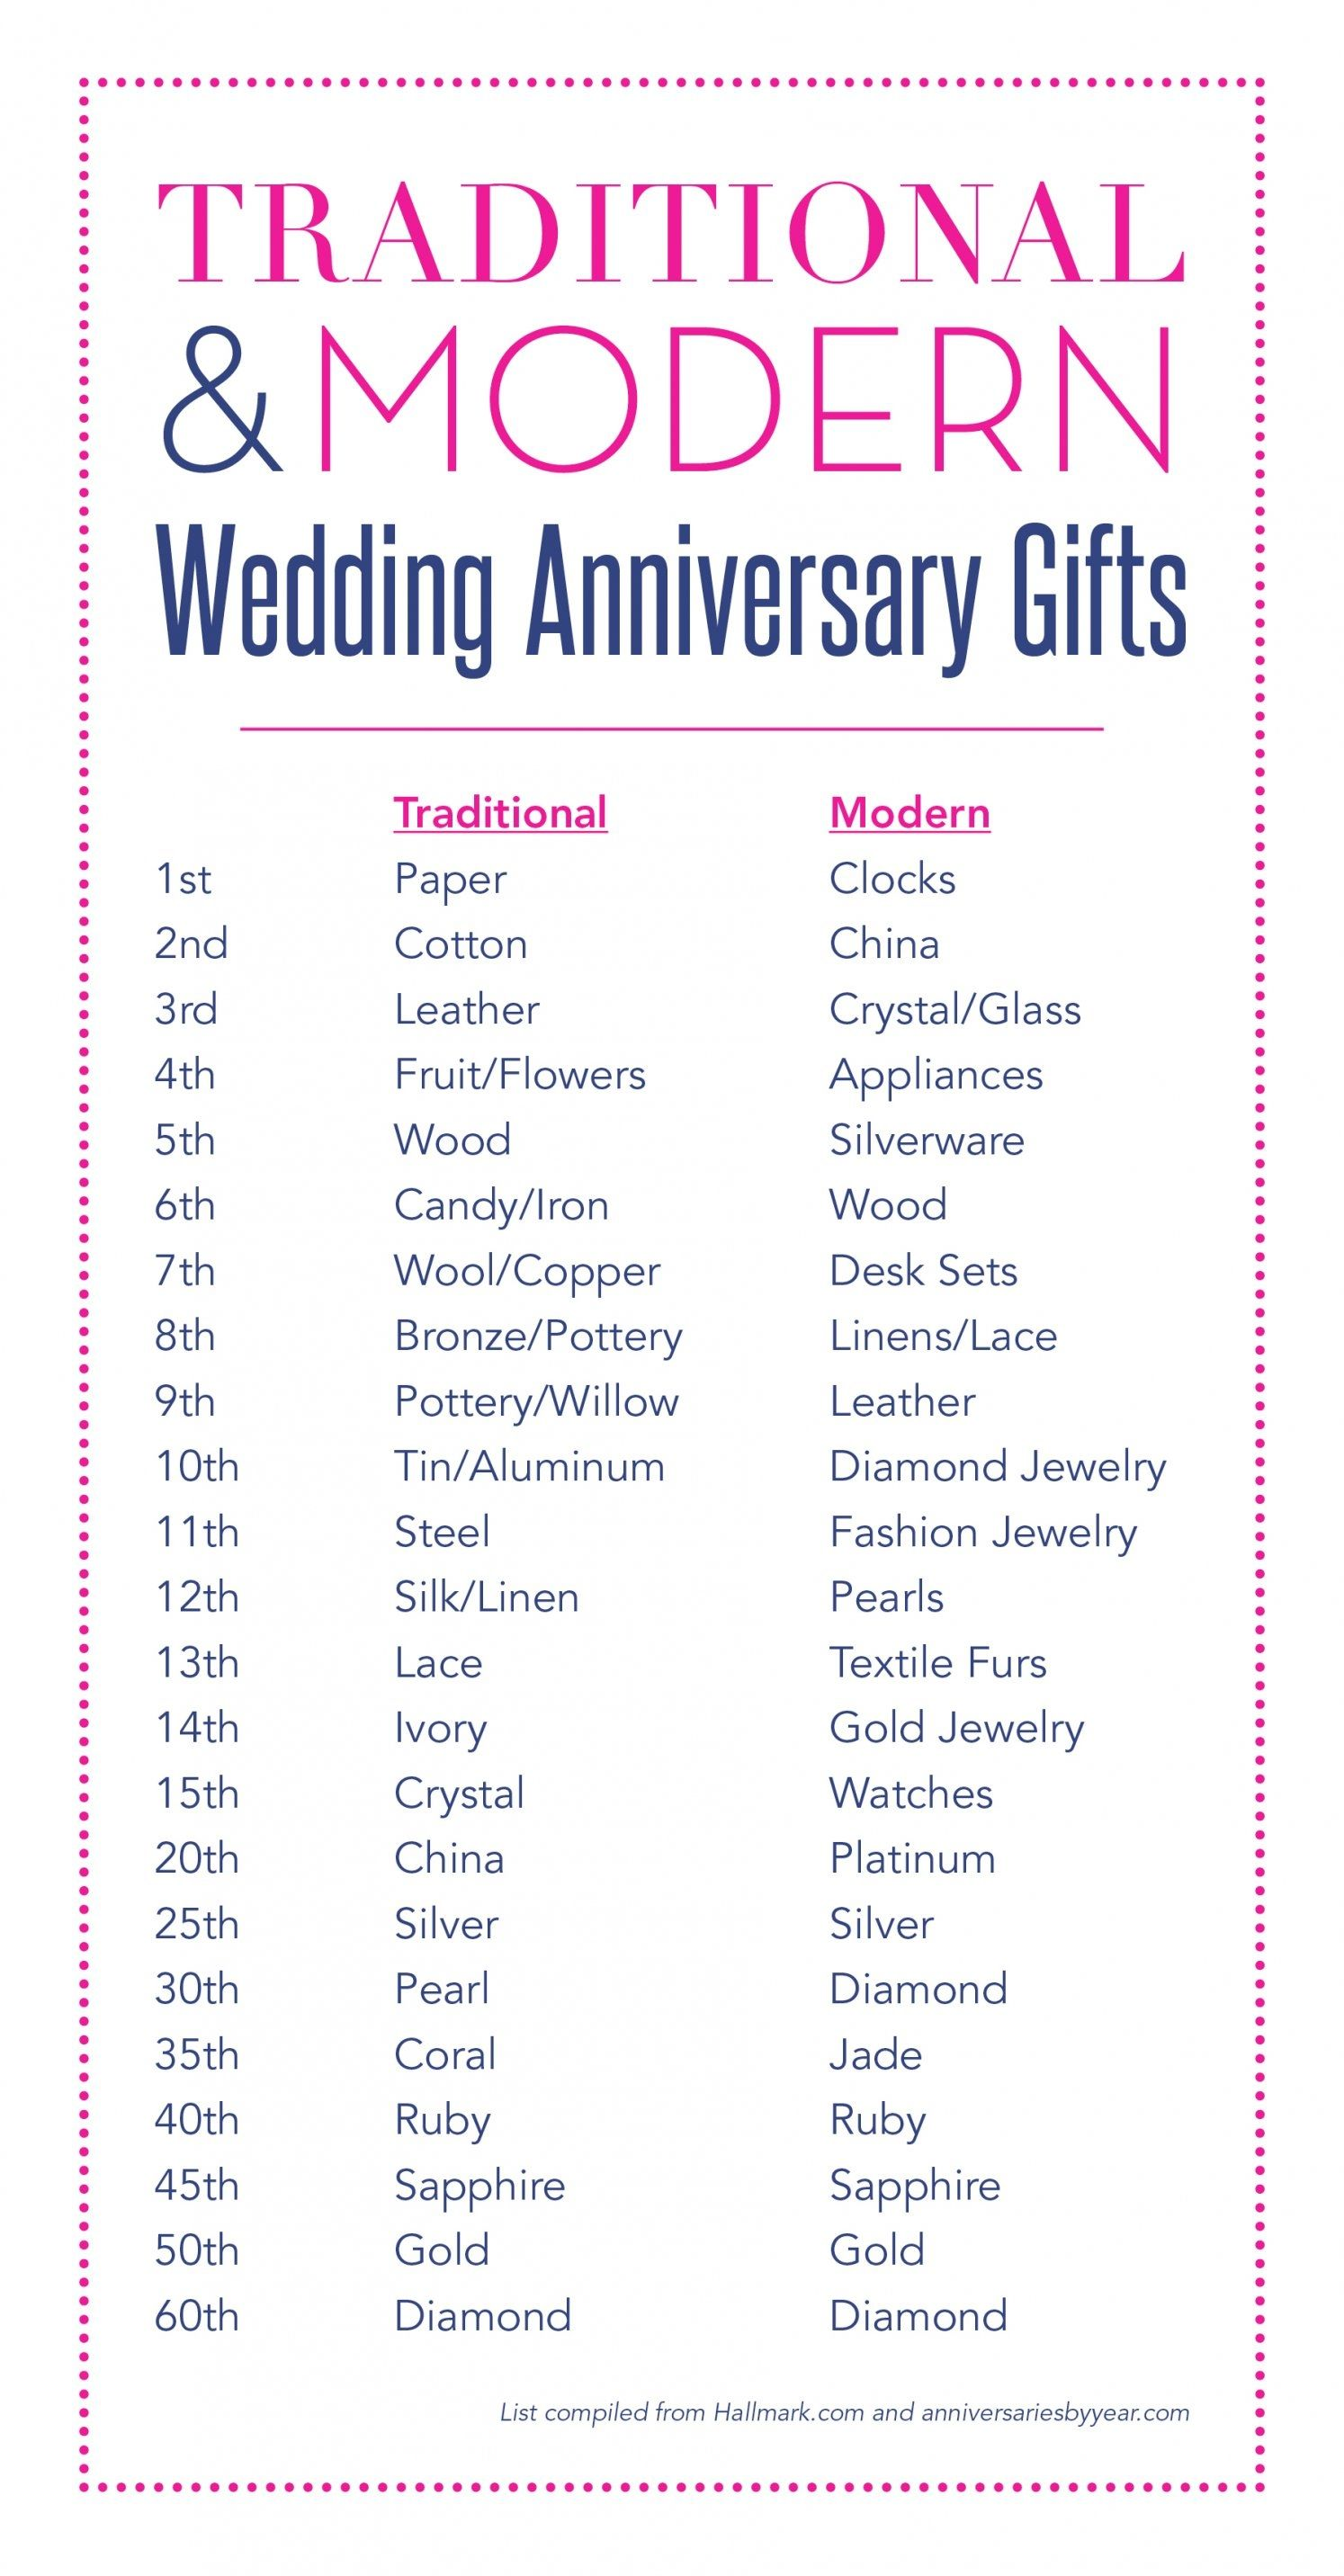 30 Traditional Wedding Anniversary Gifts